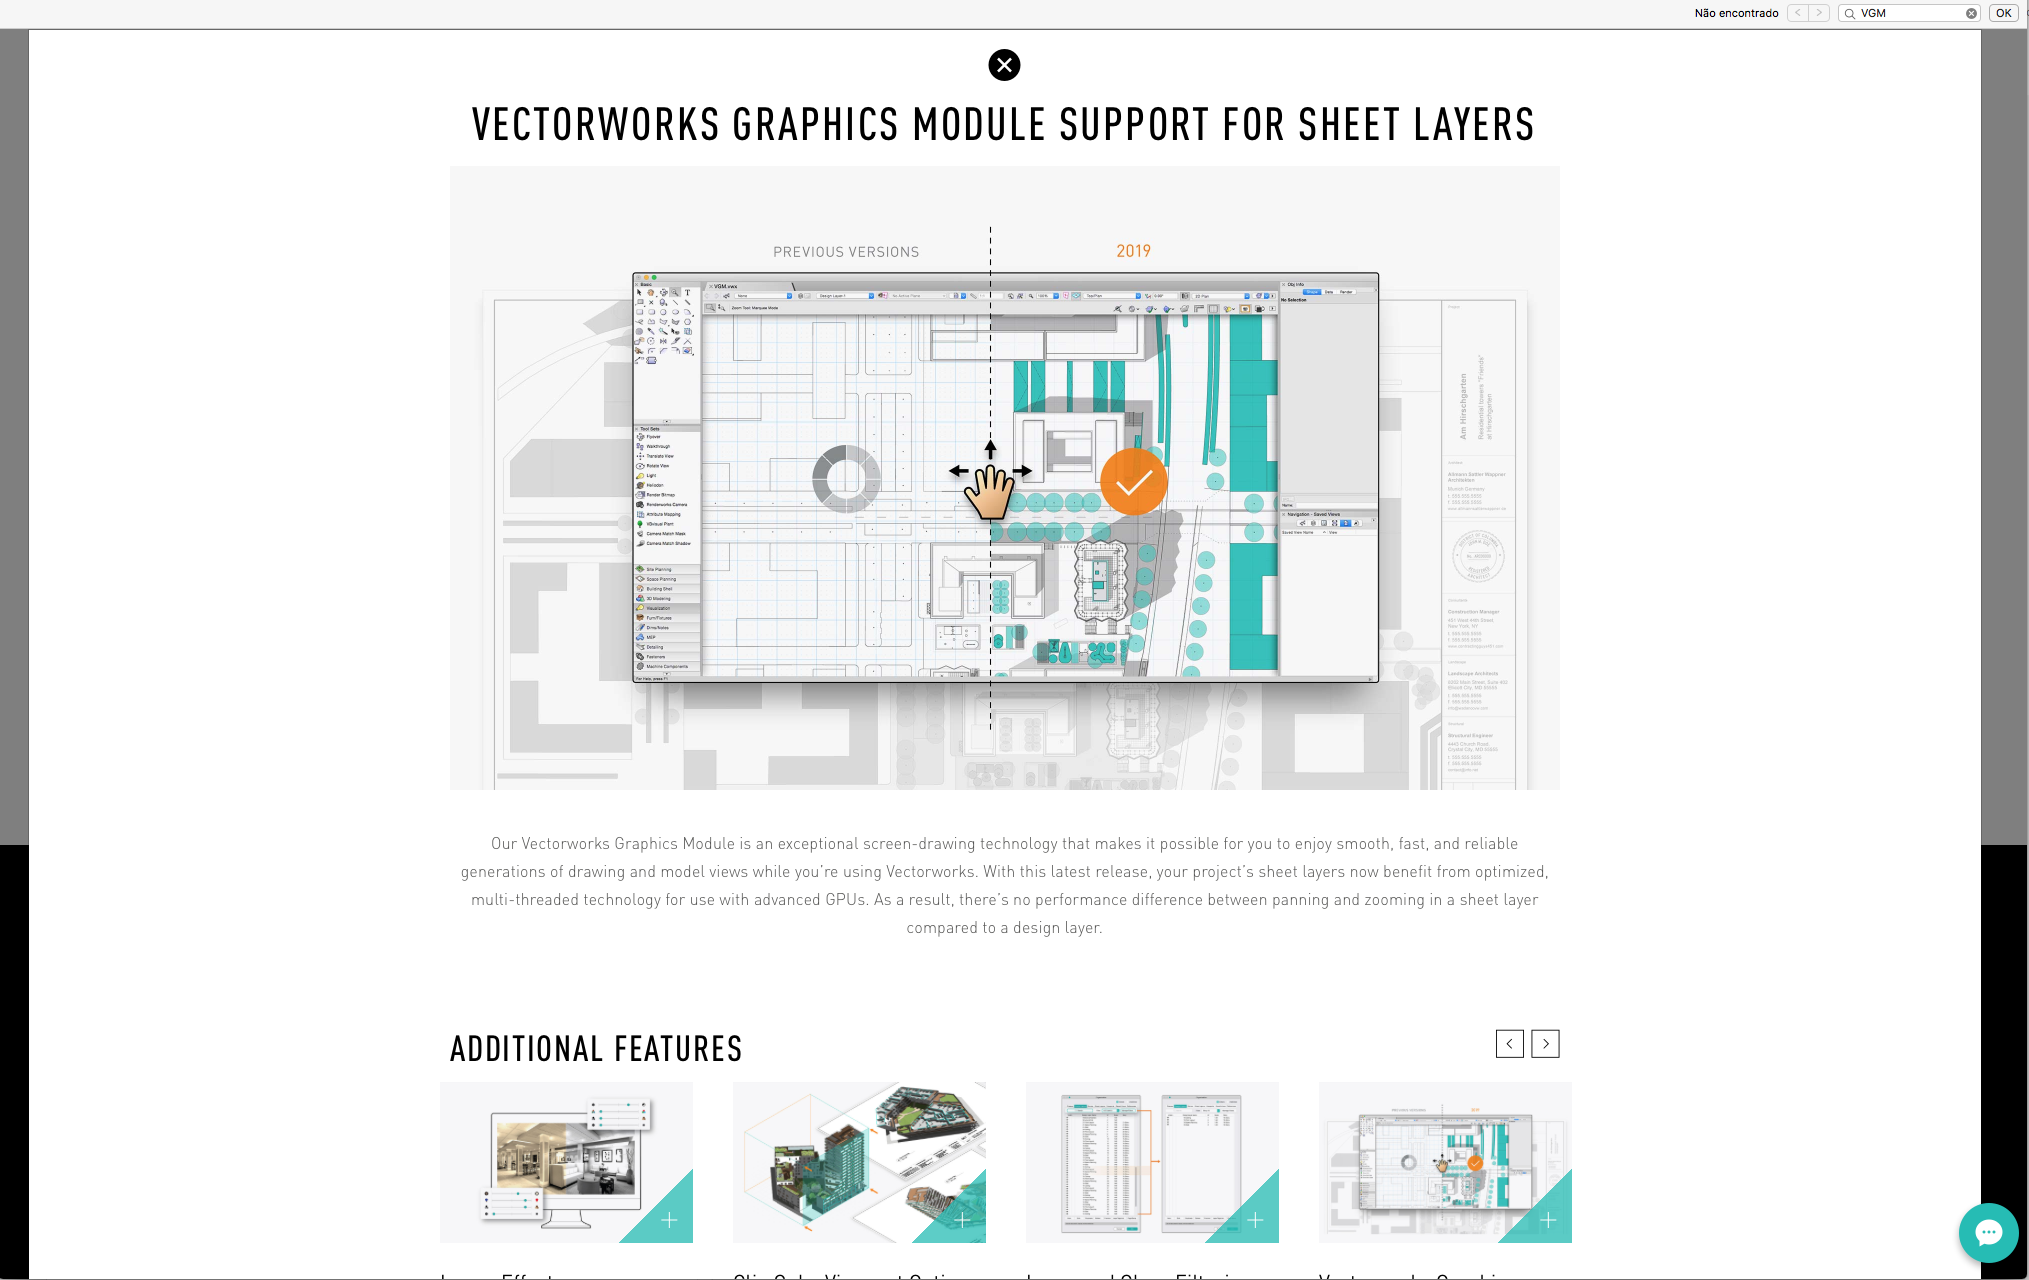 Graphics glitch? - Troubleshooting - Vectorworks Community Board